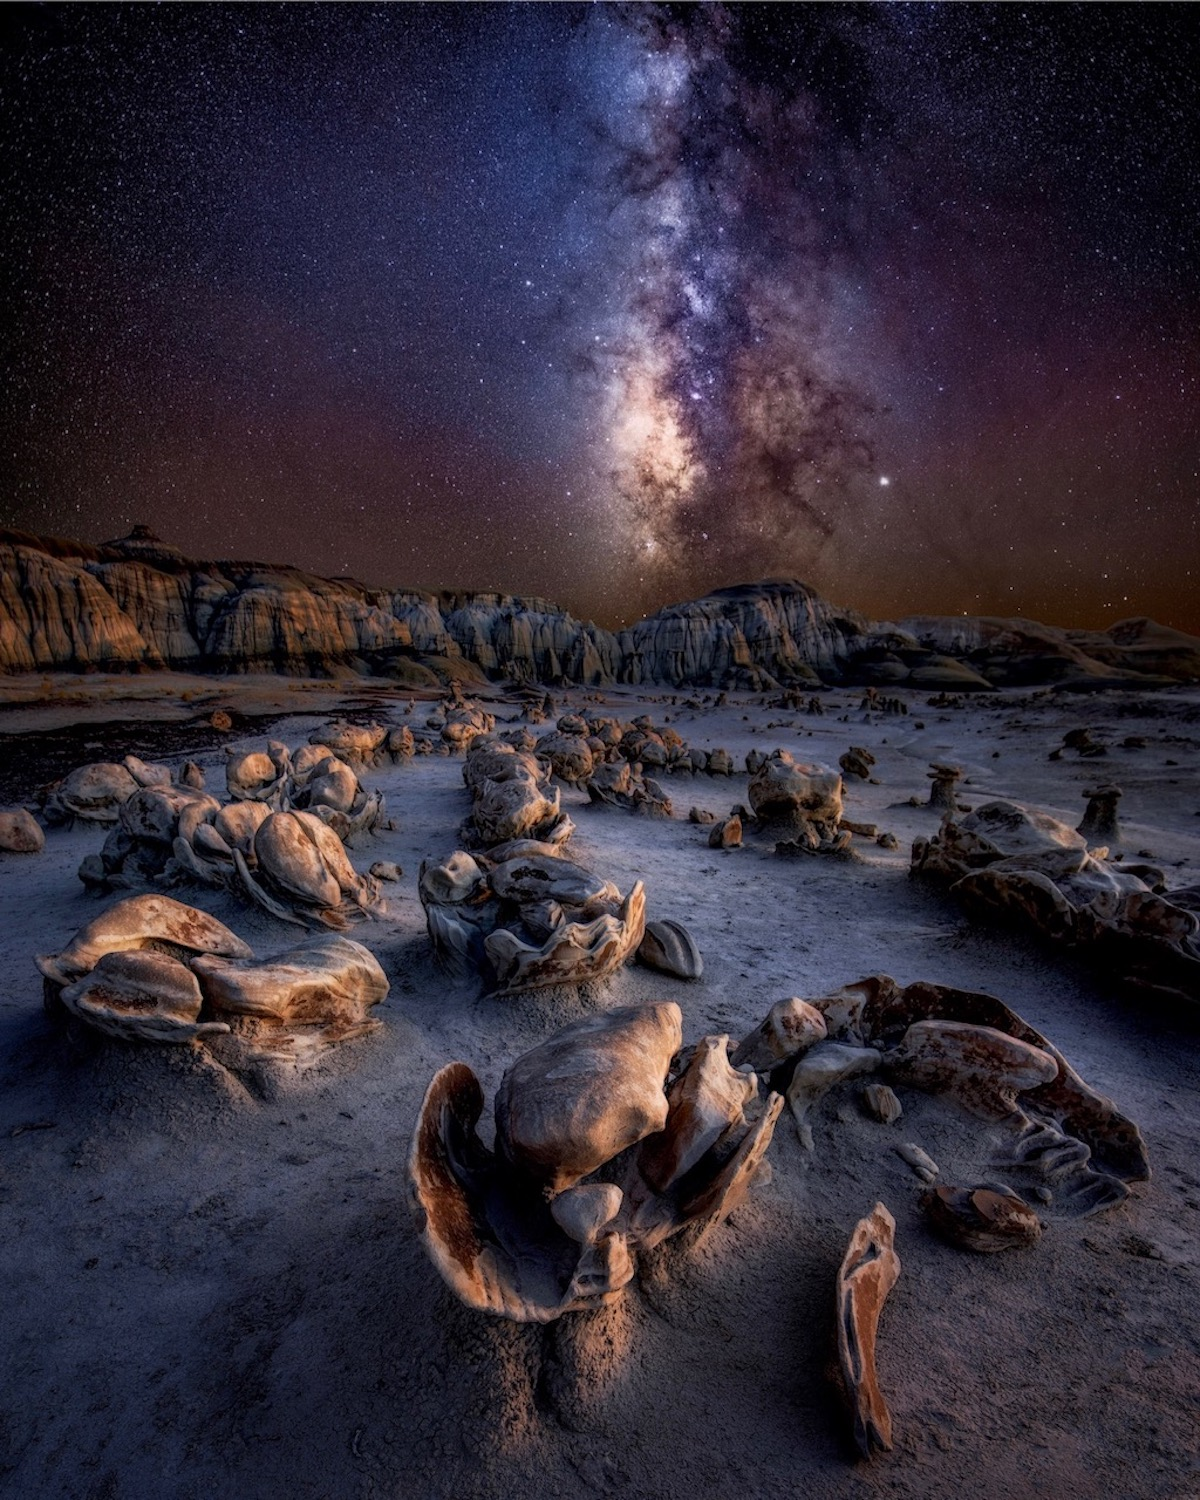 Milky Way Over the Badlands in New Mexico